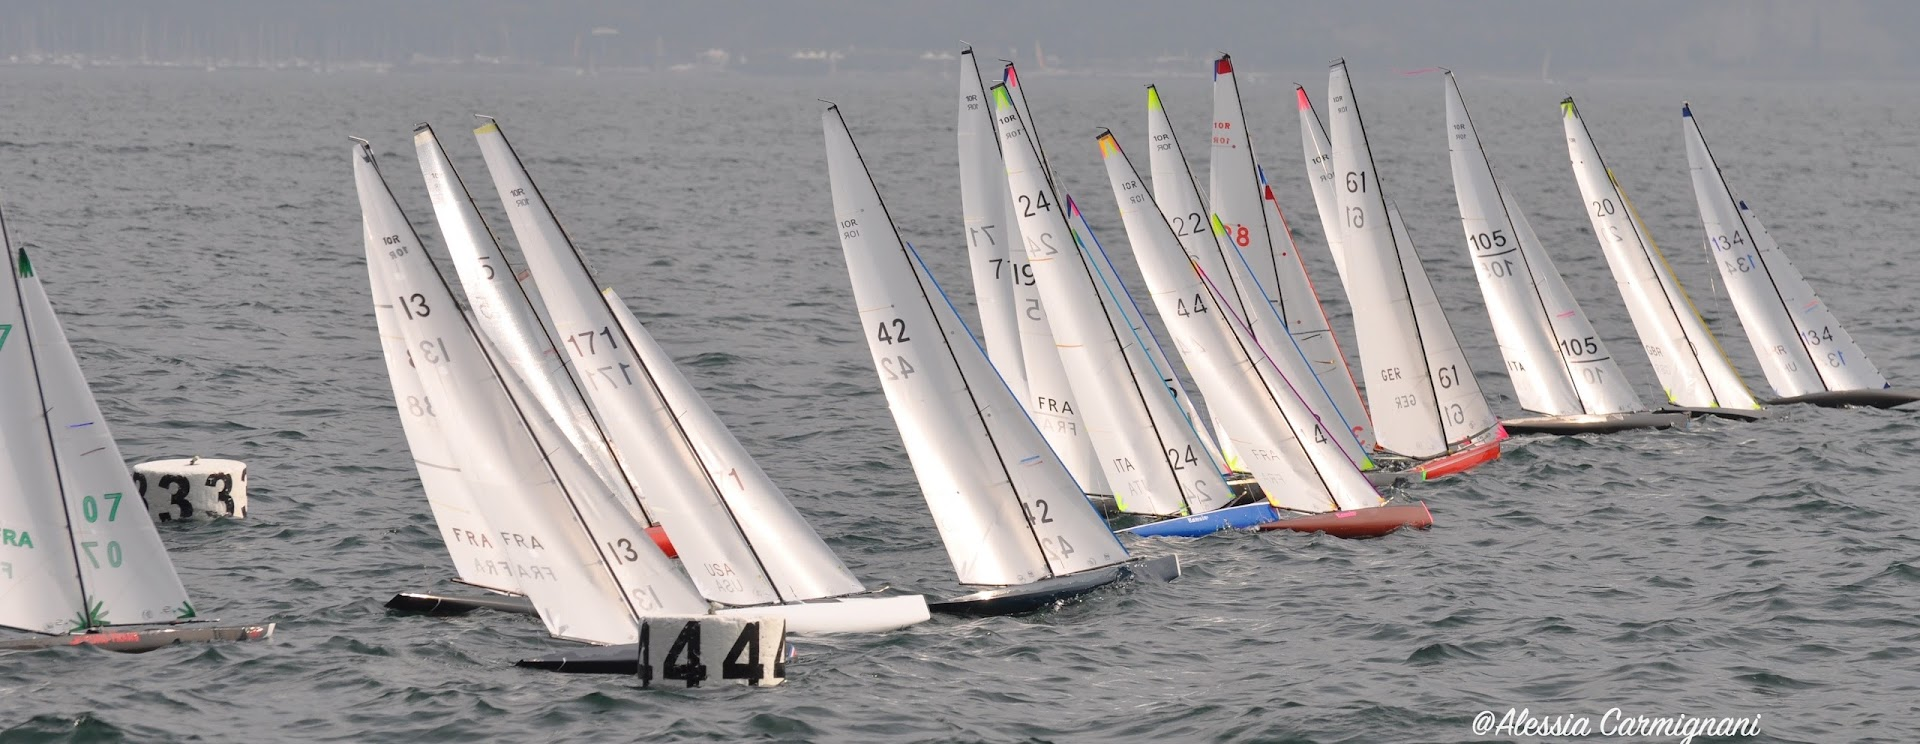 Day 3 10R Worlds – The full force of Lake Garda kicks in on the last day.